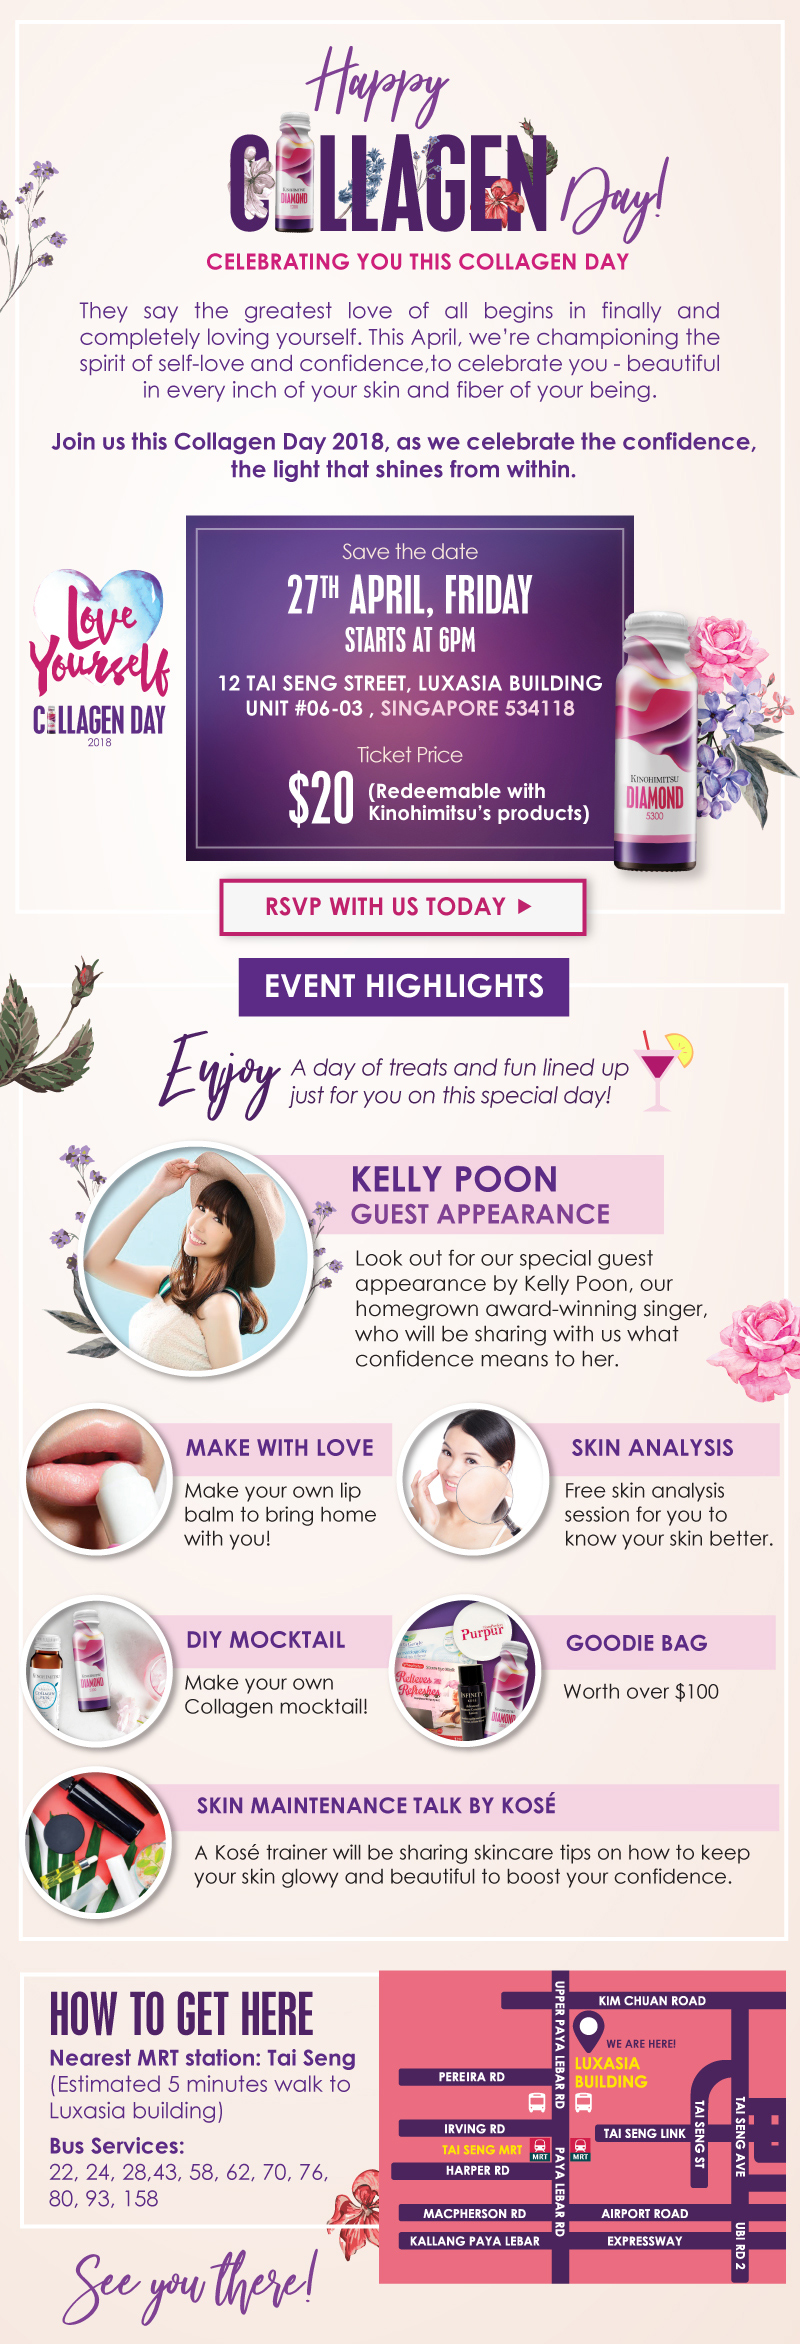 Collagen Day 2018 with Kelly Poon